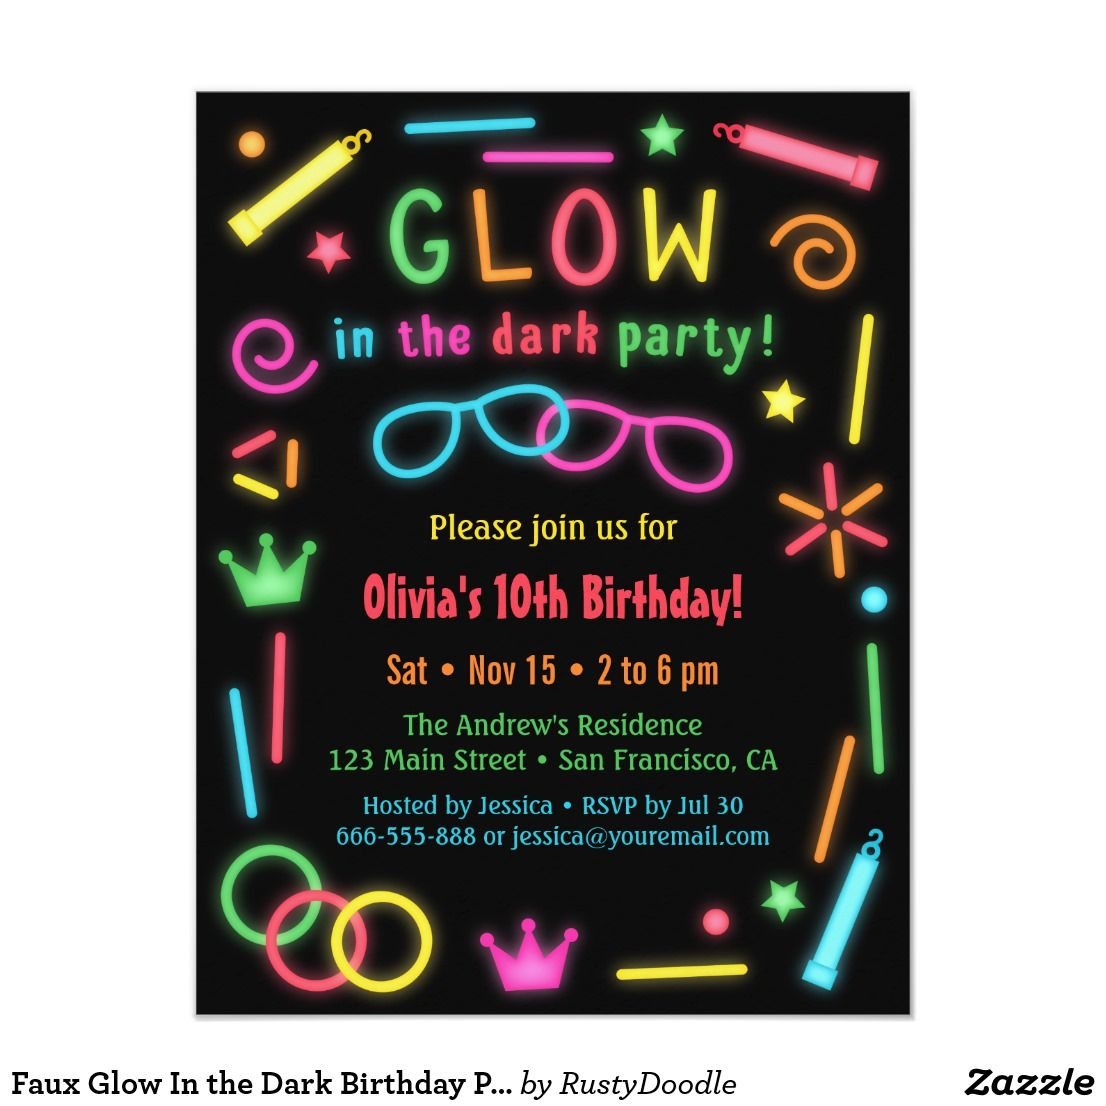 Faux Glow In the Dark Birthday Party Invitations | Neon glow, Glow ...